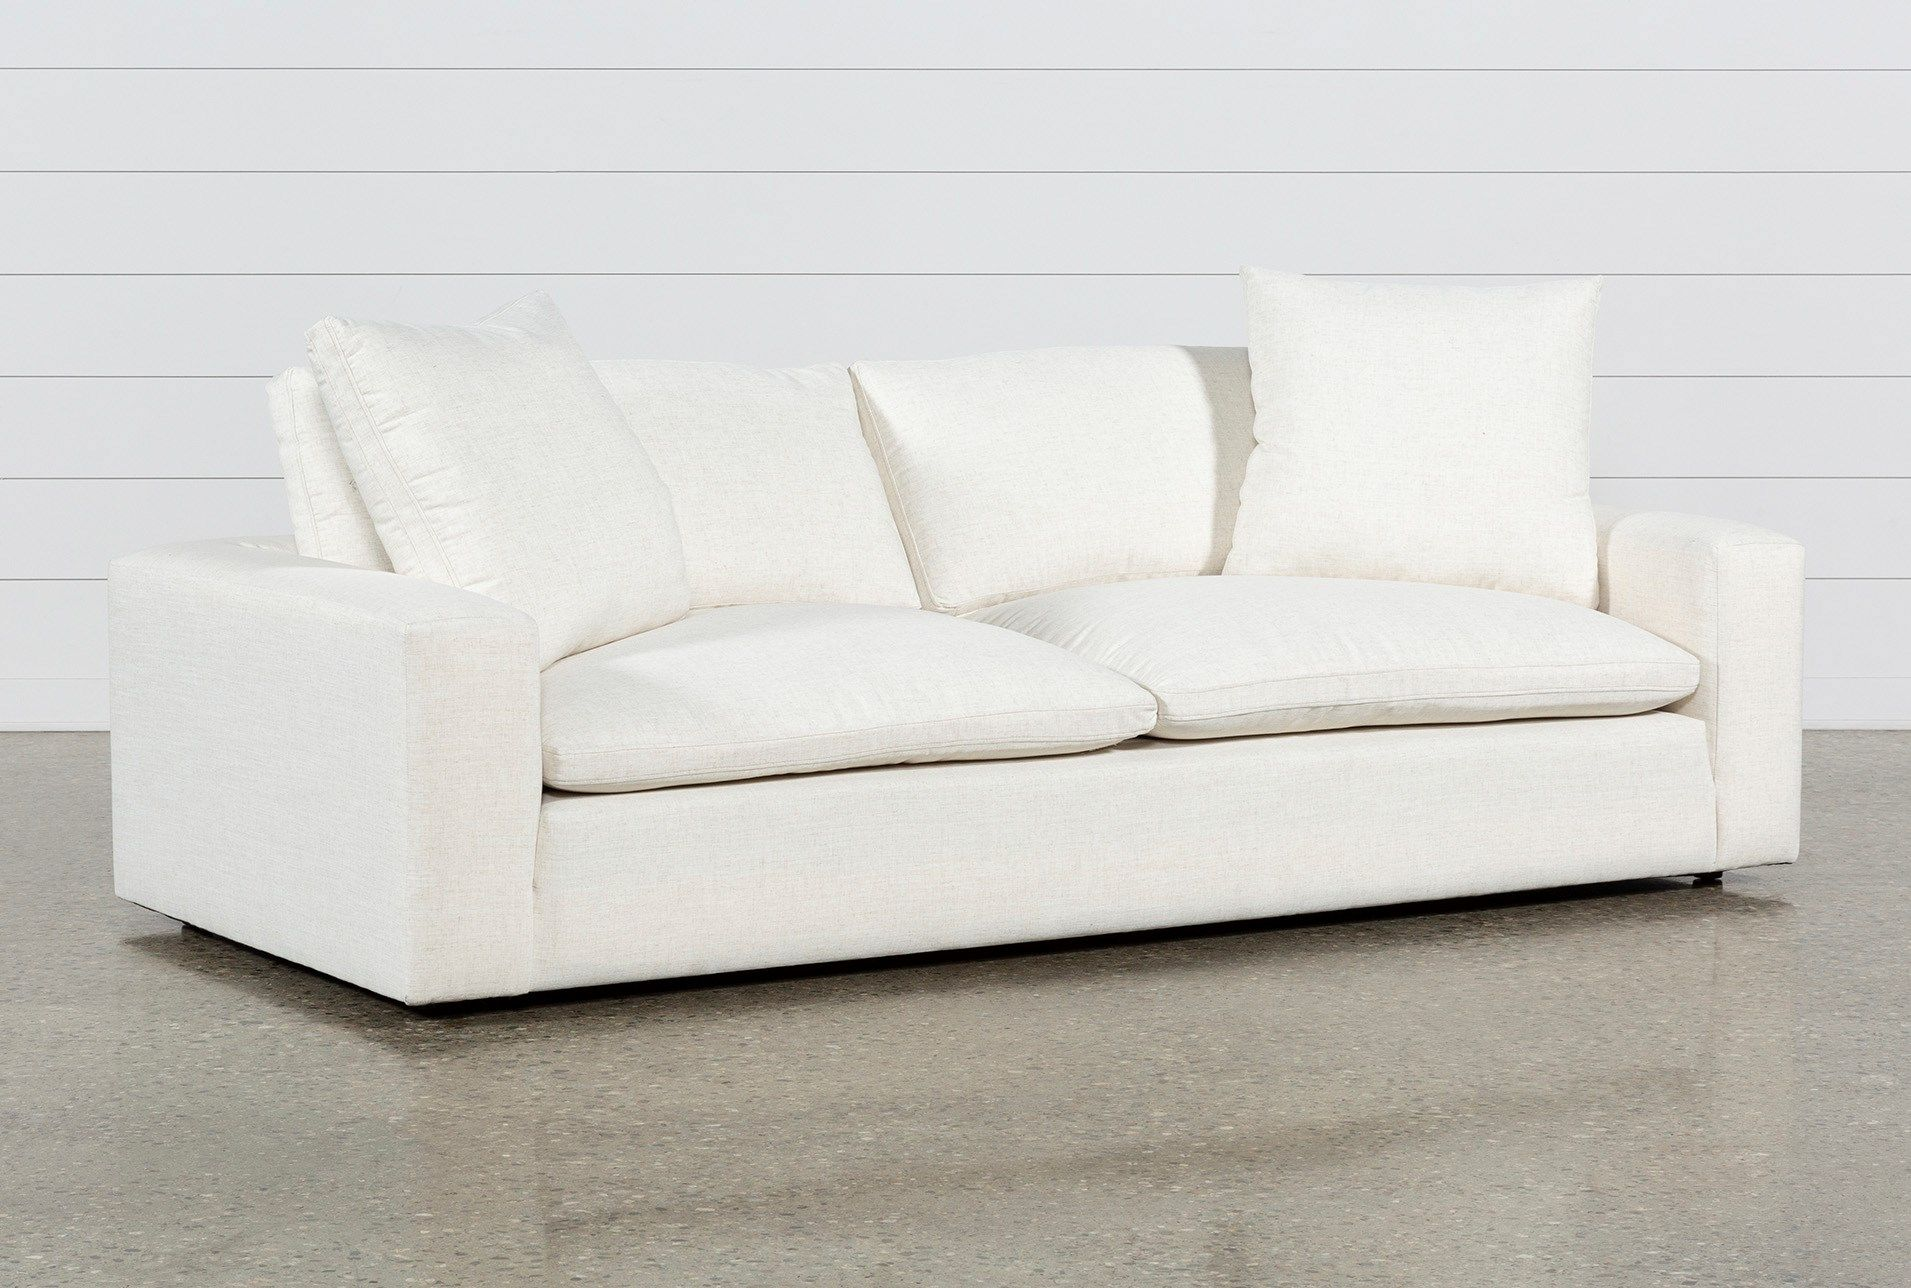 Utopia Sofa In 2020 White Sofa Bed Fabric Sofa White Sofas